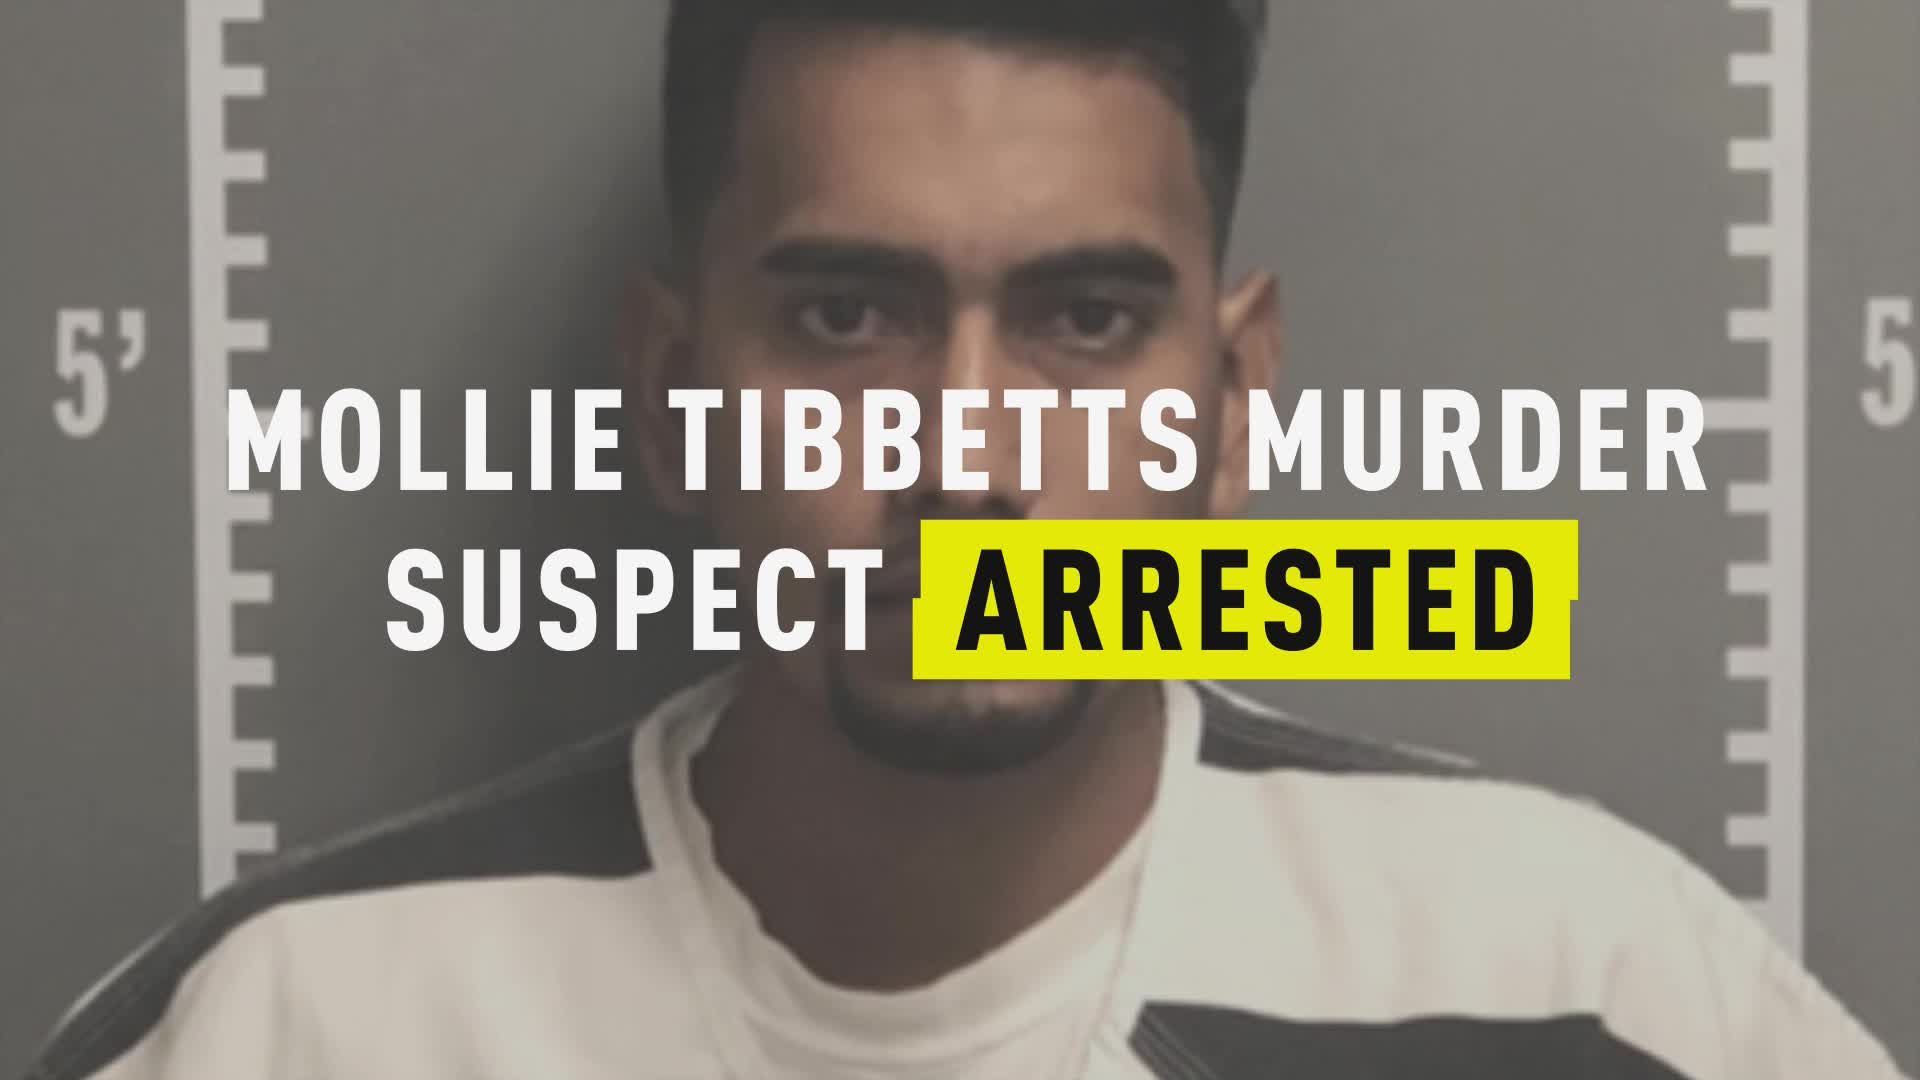 Mollie Tibbetts Murder Suspect Arrested